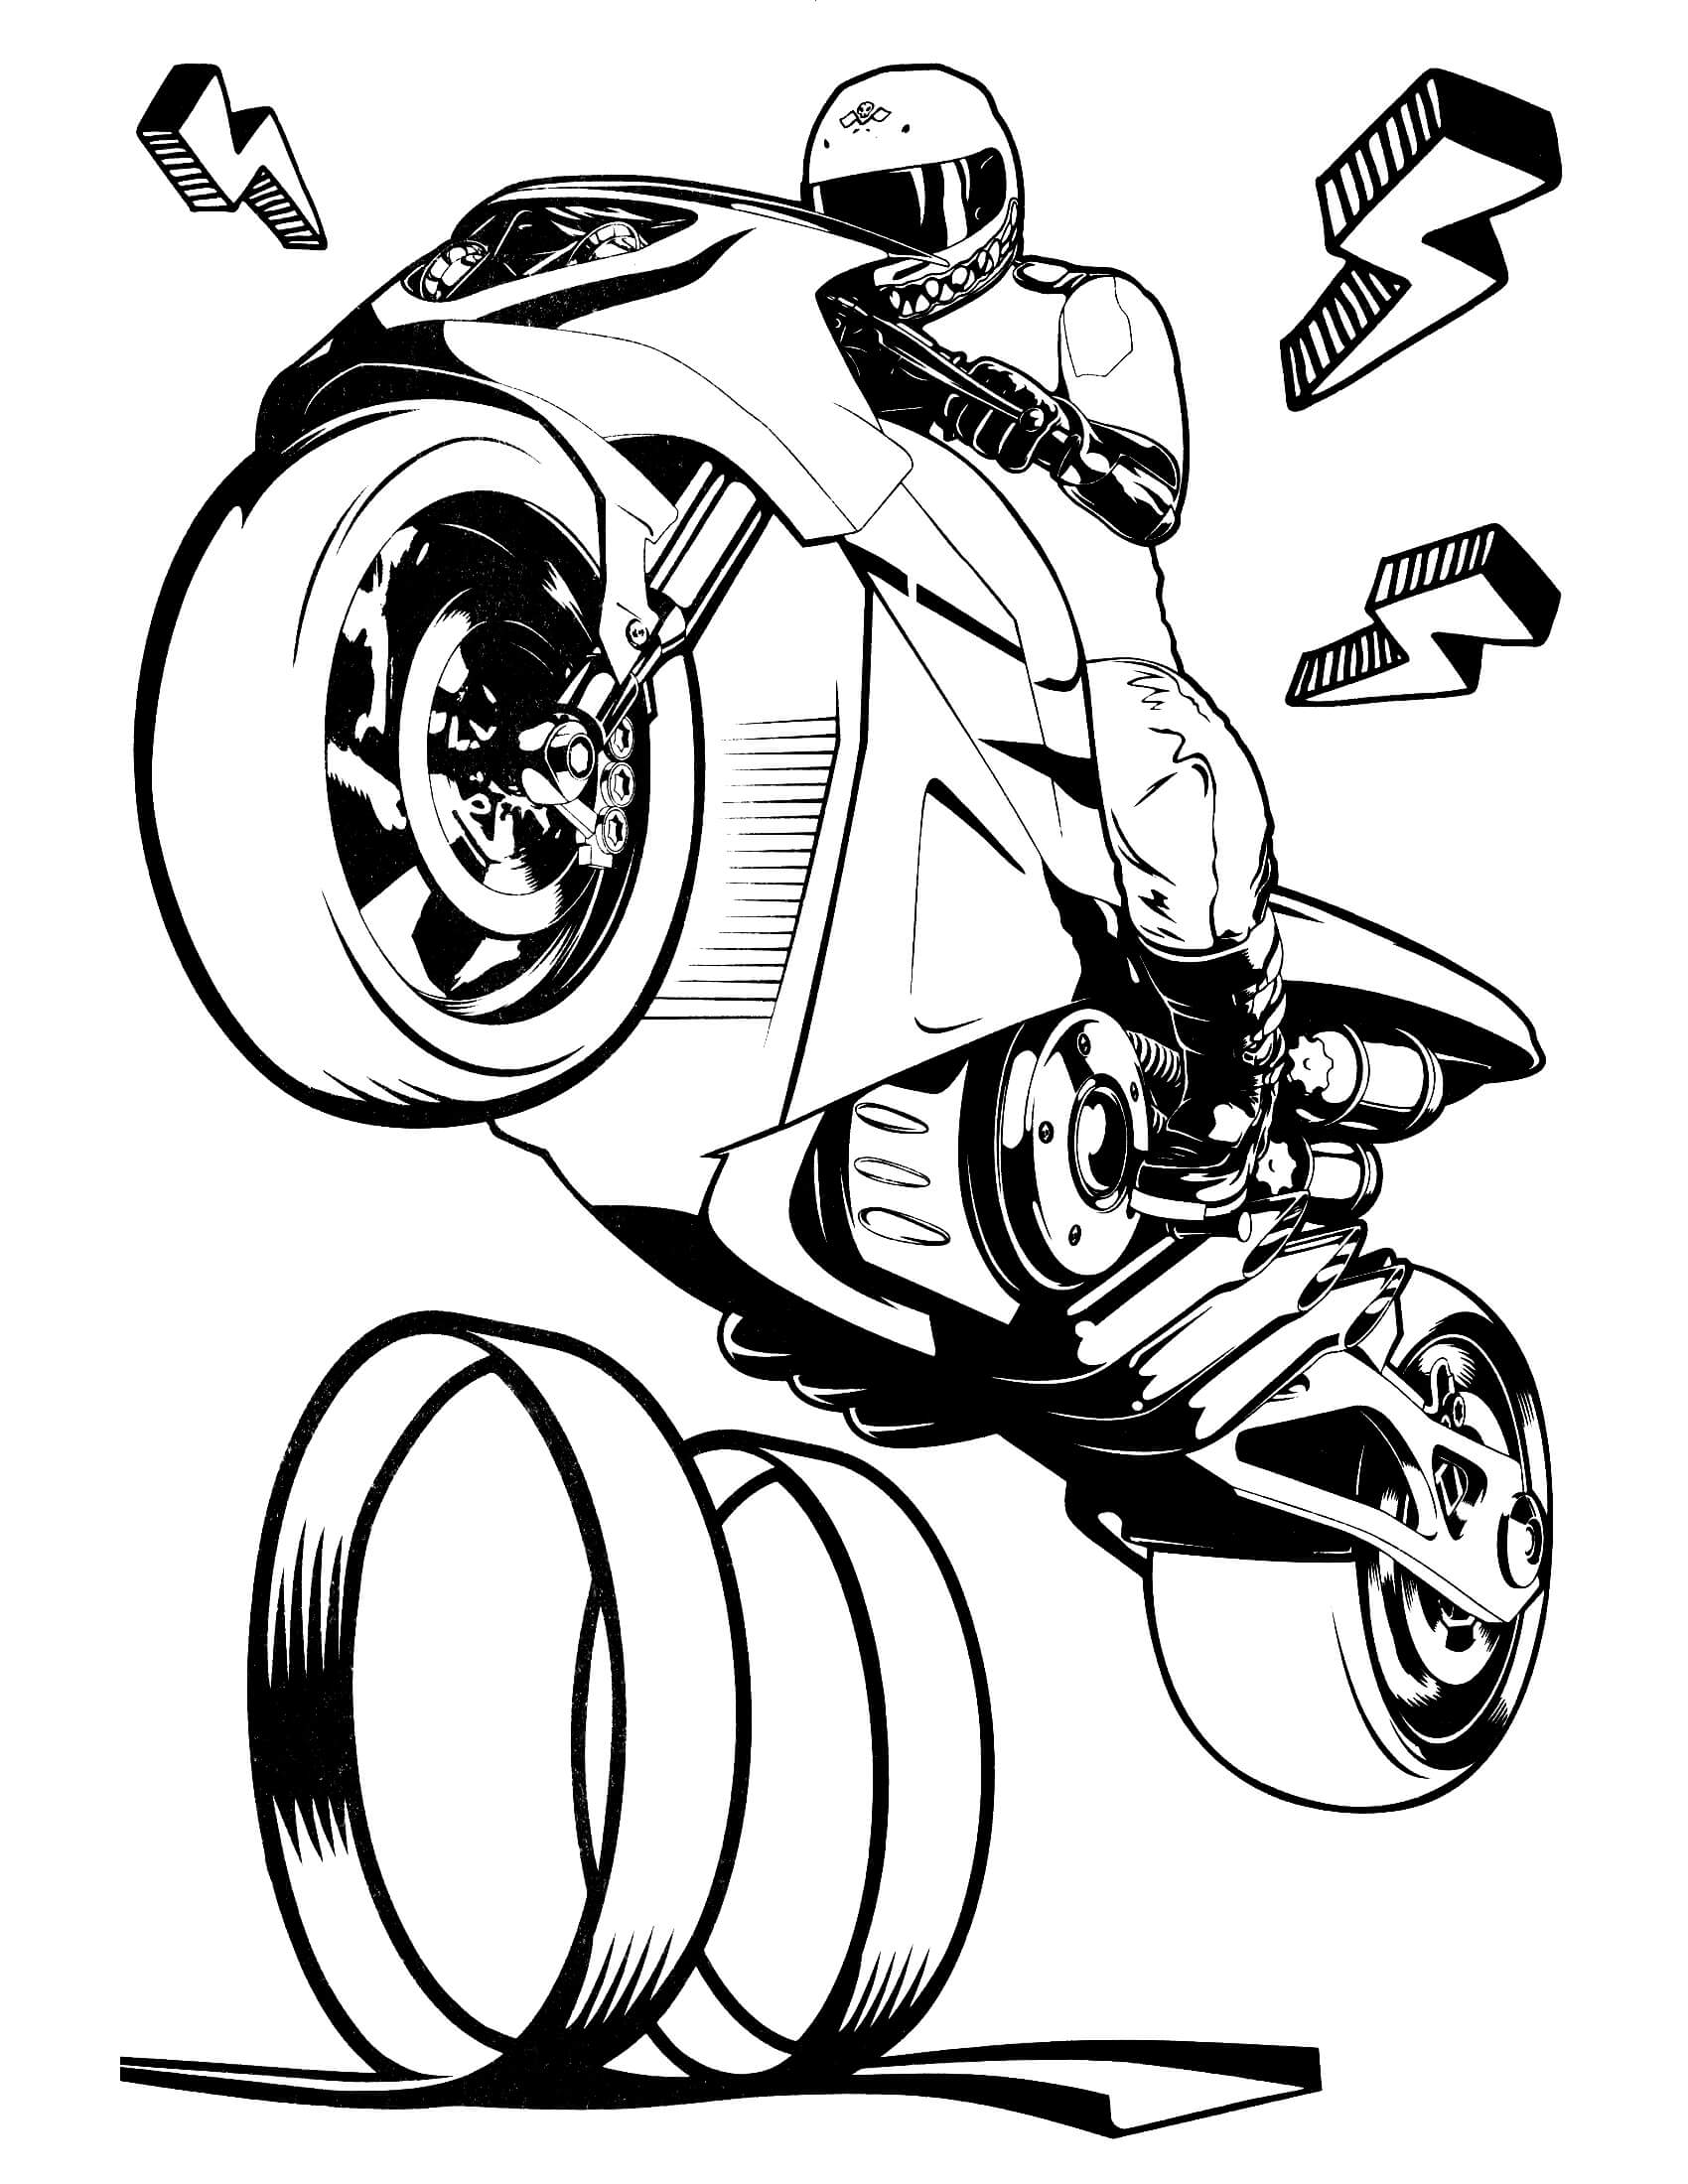 hotwheels coloring pages hot wheels racing league hot wheels coloring pages set 5 pages coloring hotwheels